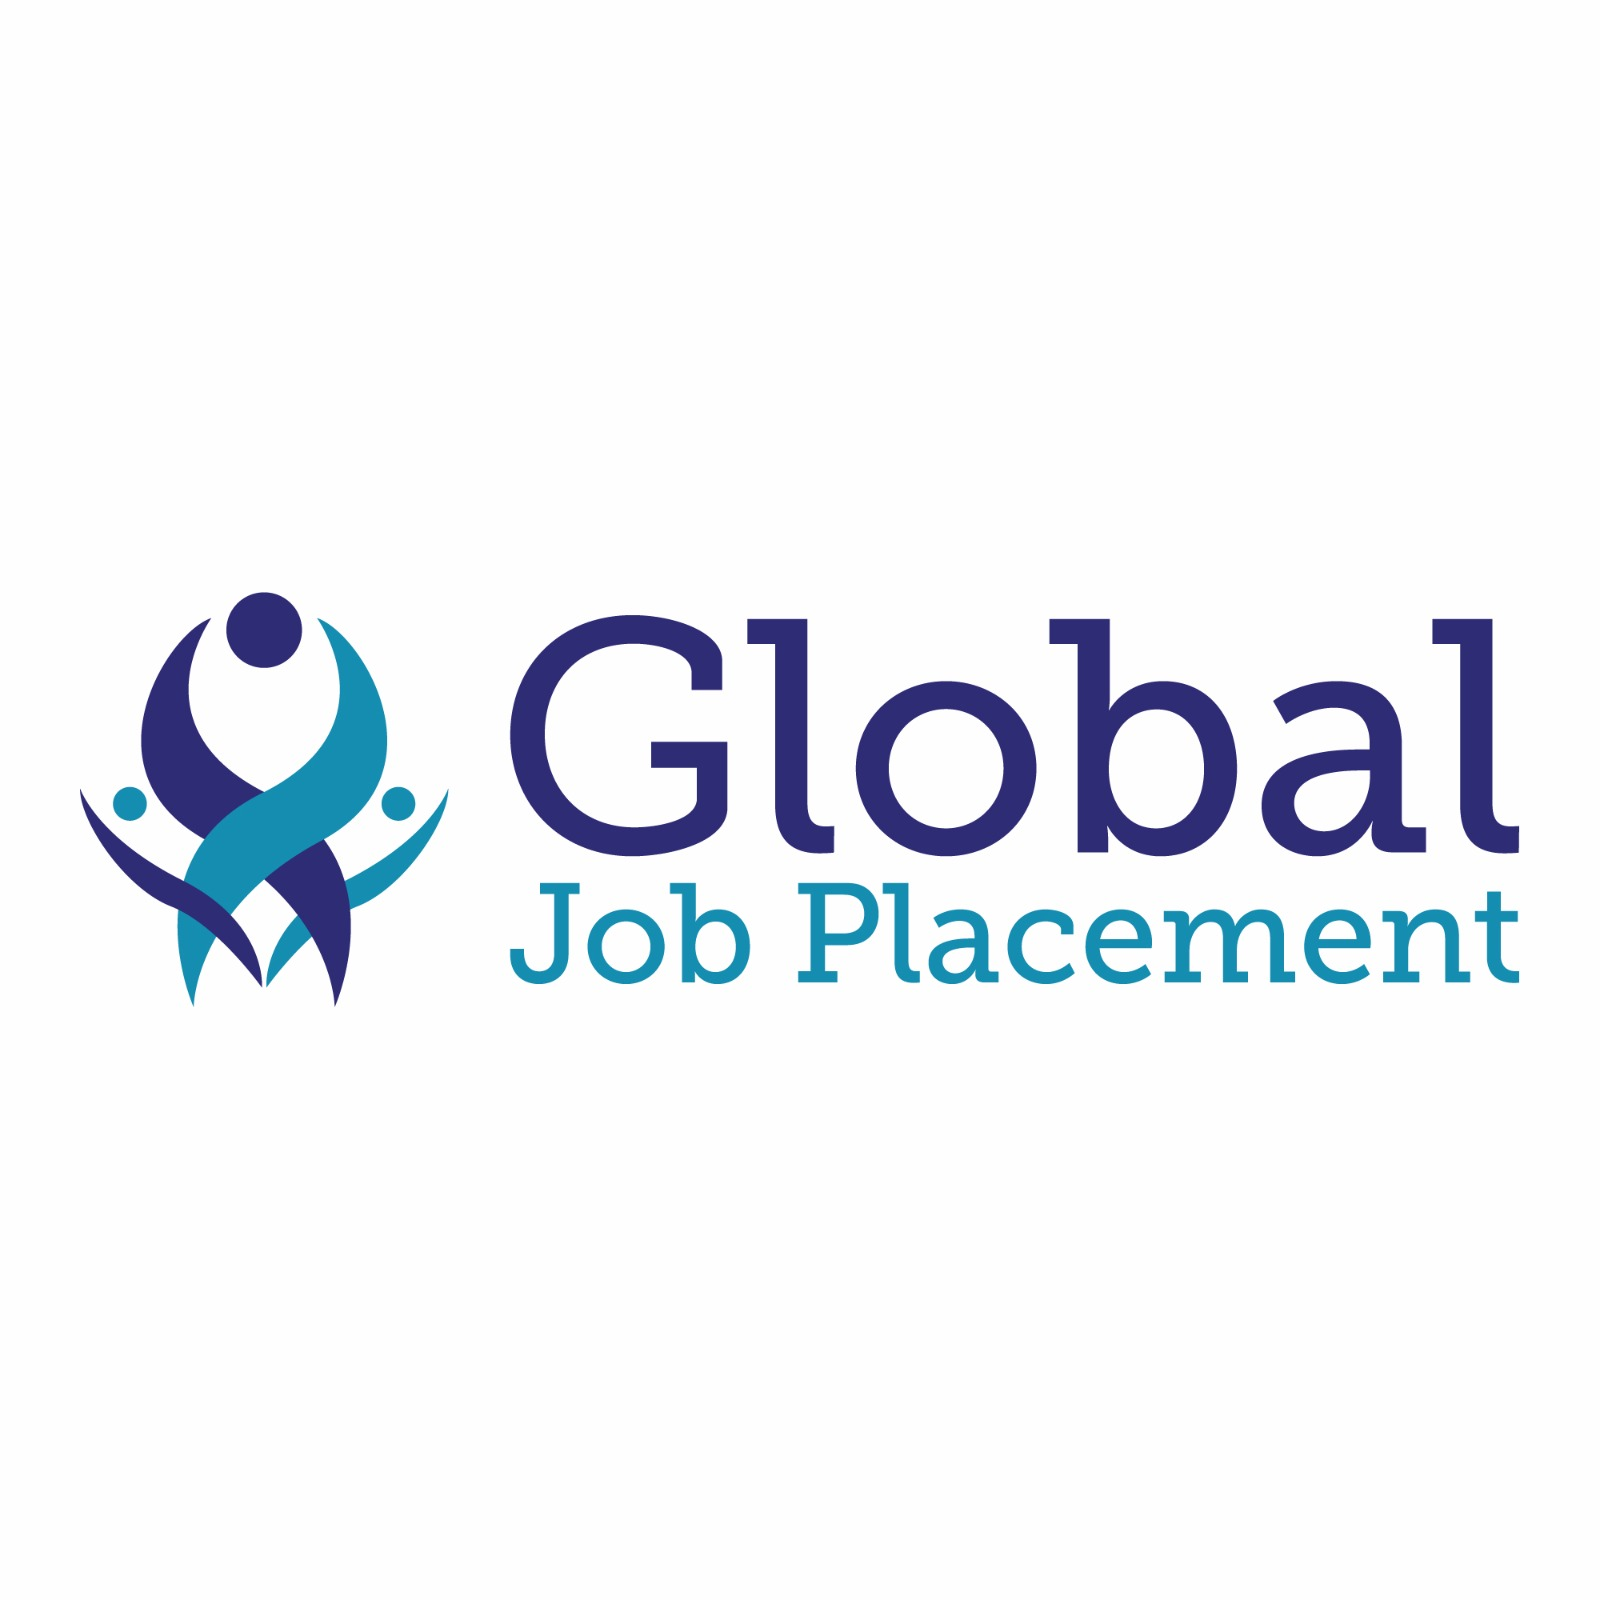 Global Job Placement logo